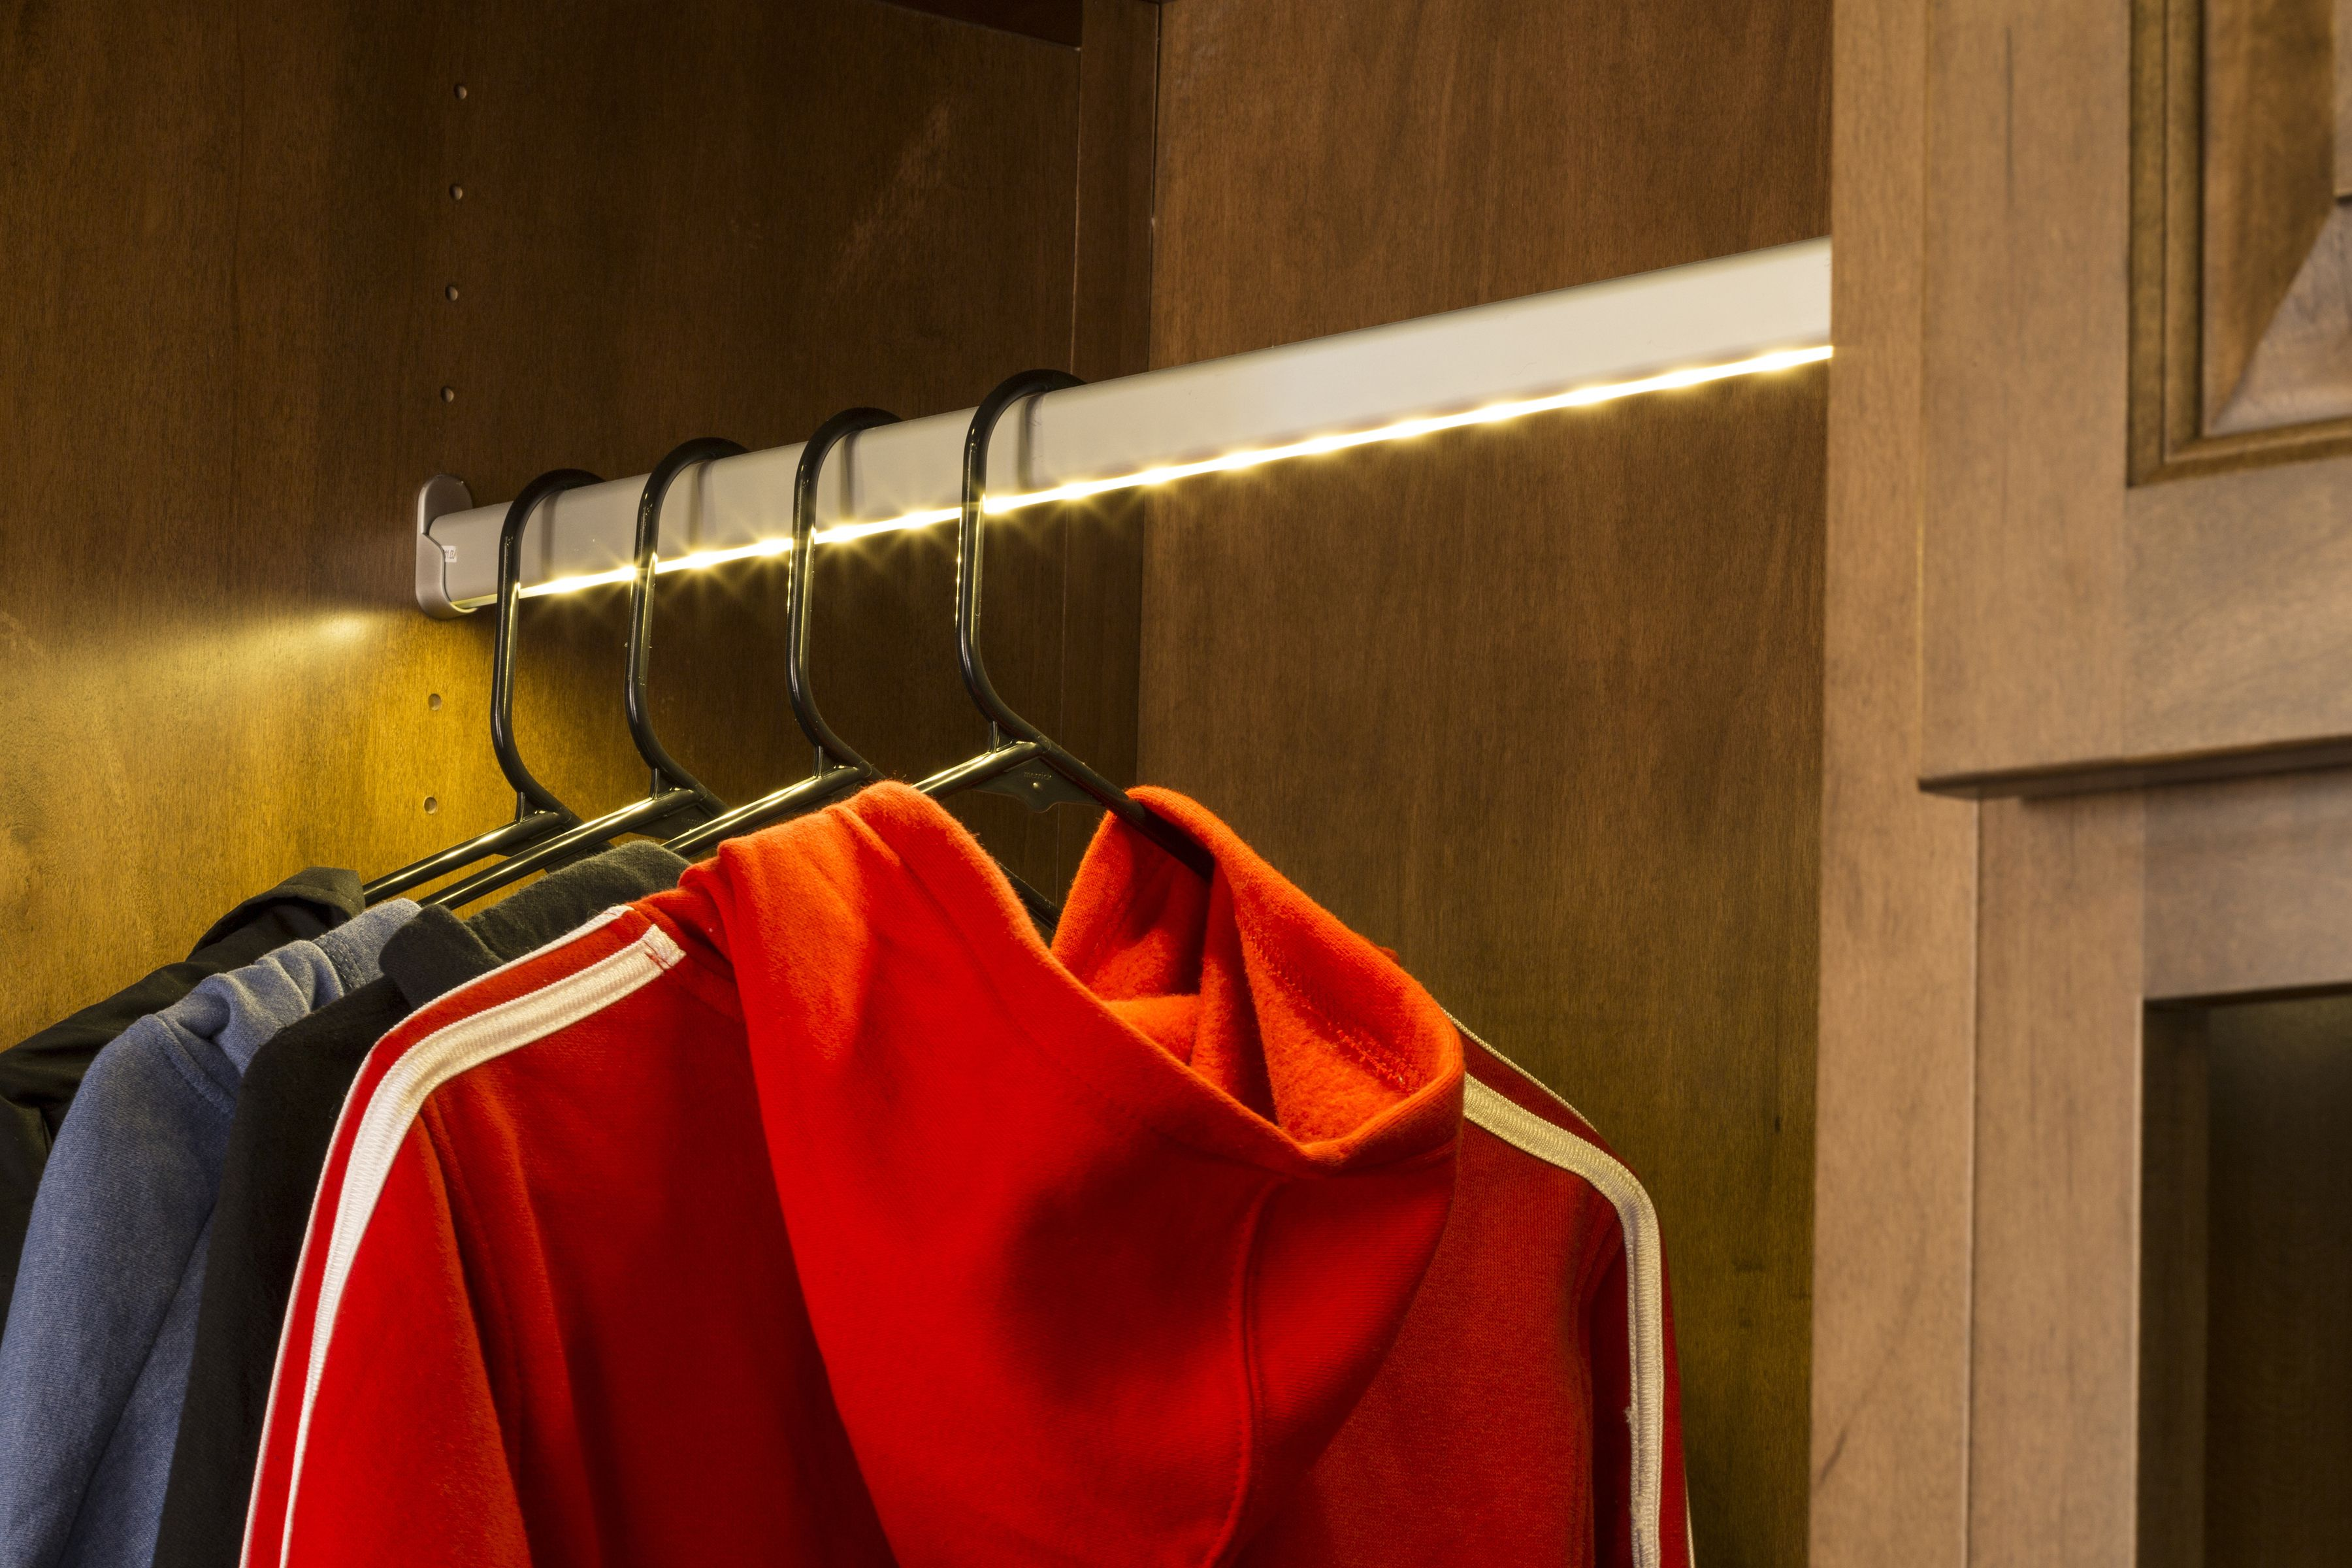 Led Lit Closet Rod By Hafele For More Daily Design Finds